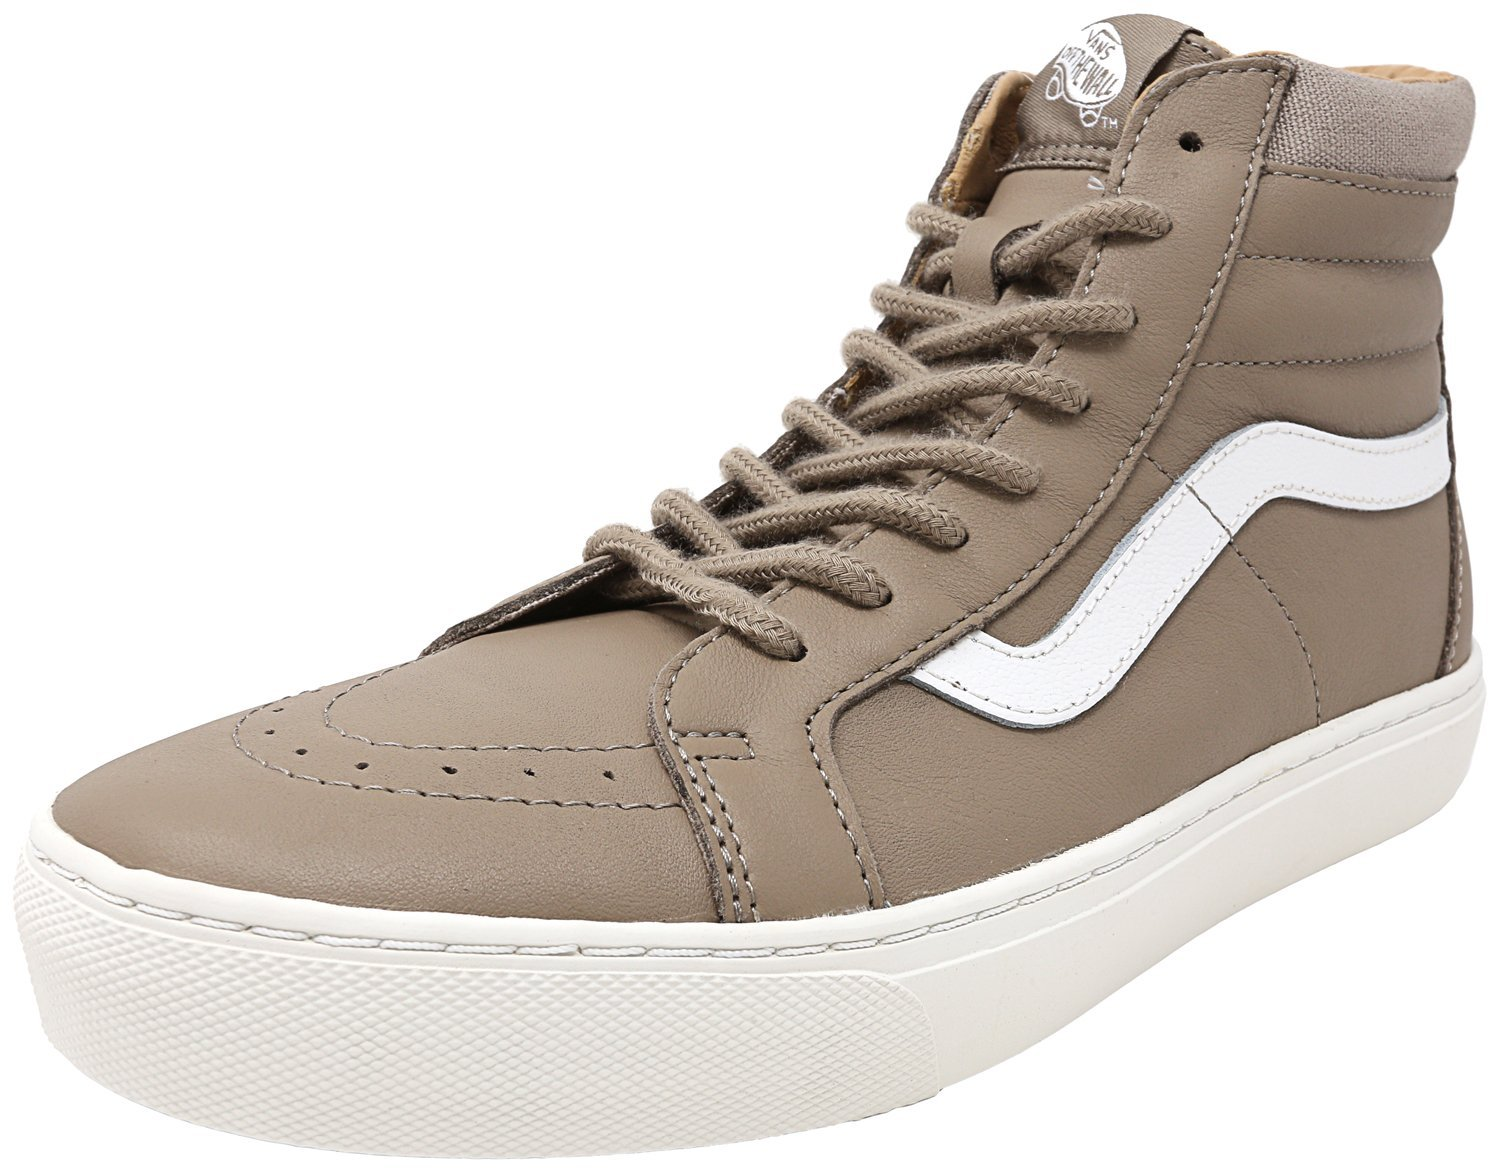 Vans Womens Sk8 Hi Cup Hight Top Lace up Fashion Sneakers B01N9RCDMW 8 B(M) US|Desert Taupe / Blanc De Blanc